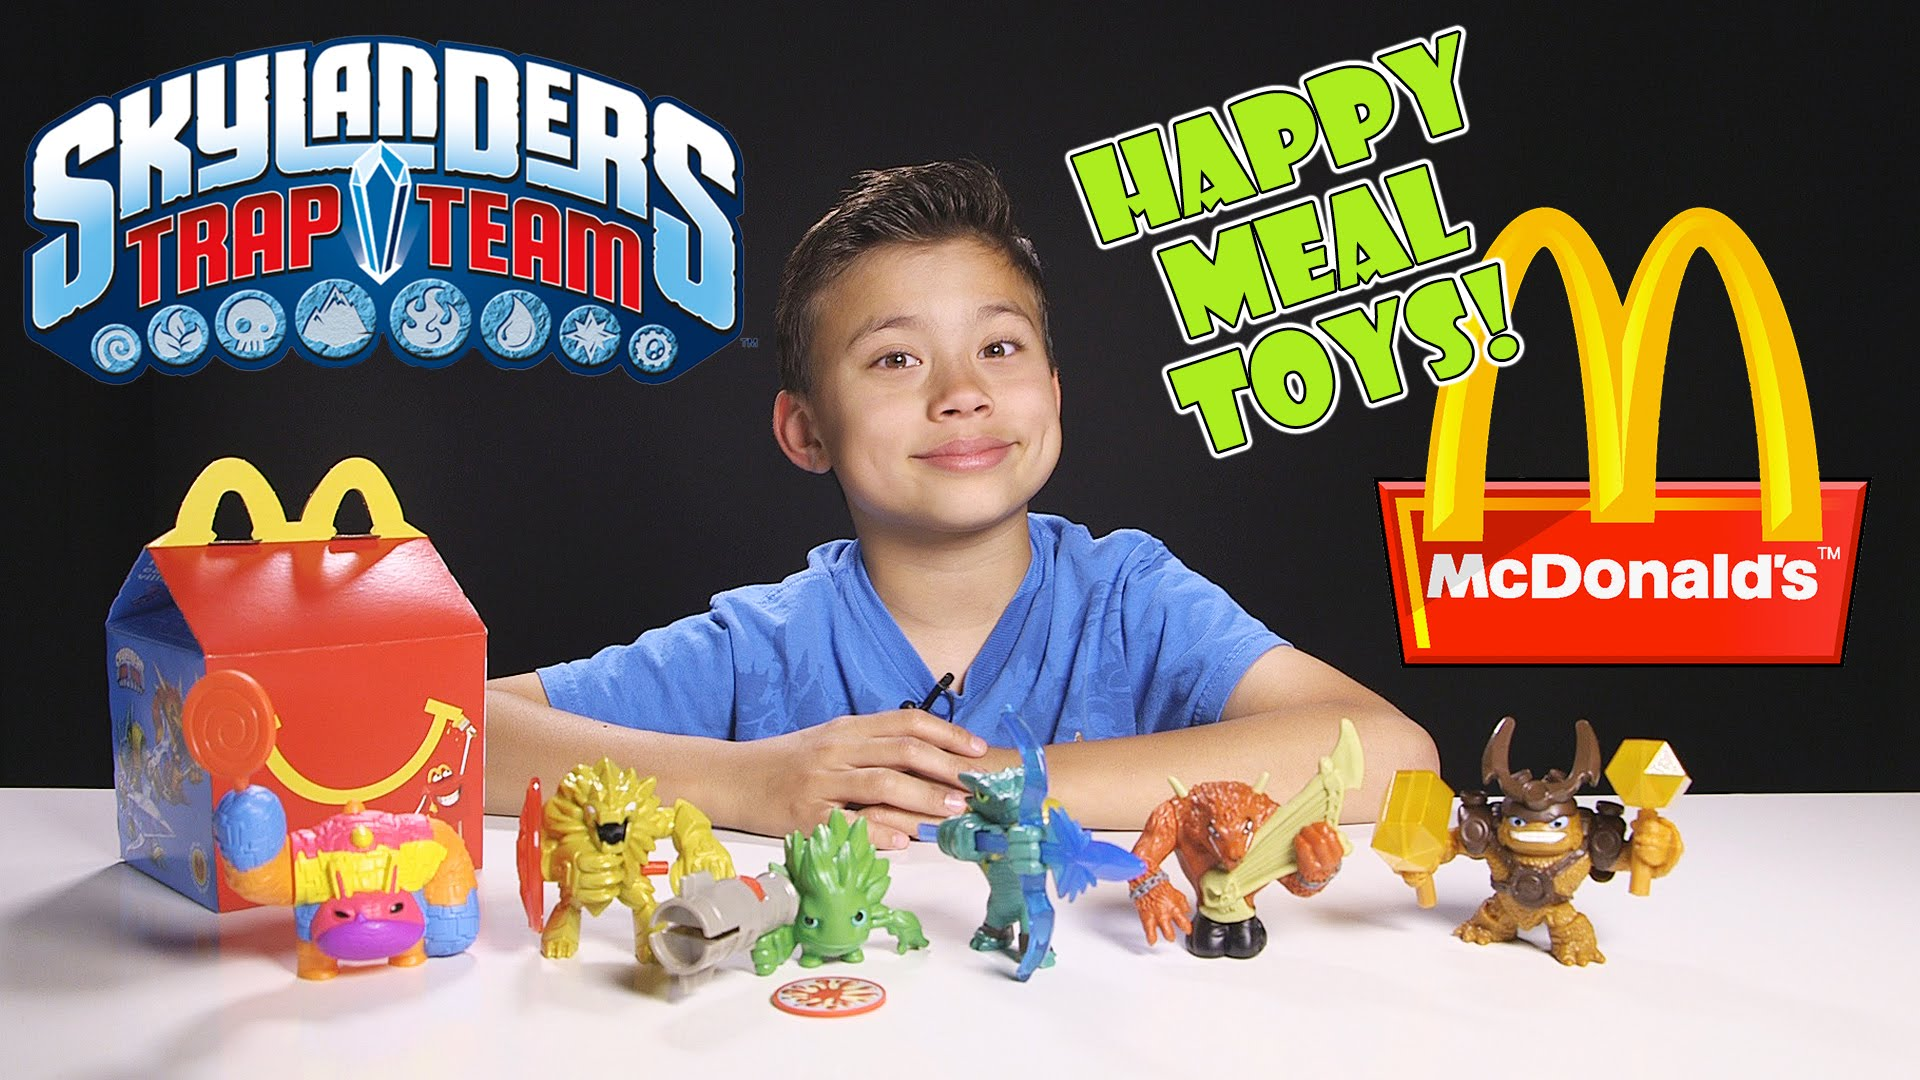 Skylanders Trap Team Happy Meal Toys Complete Collection